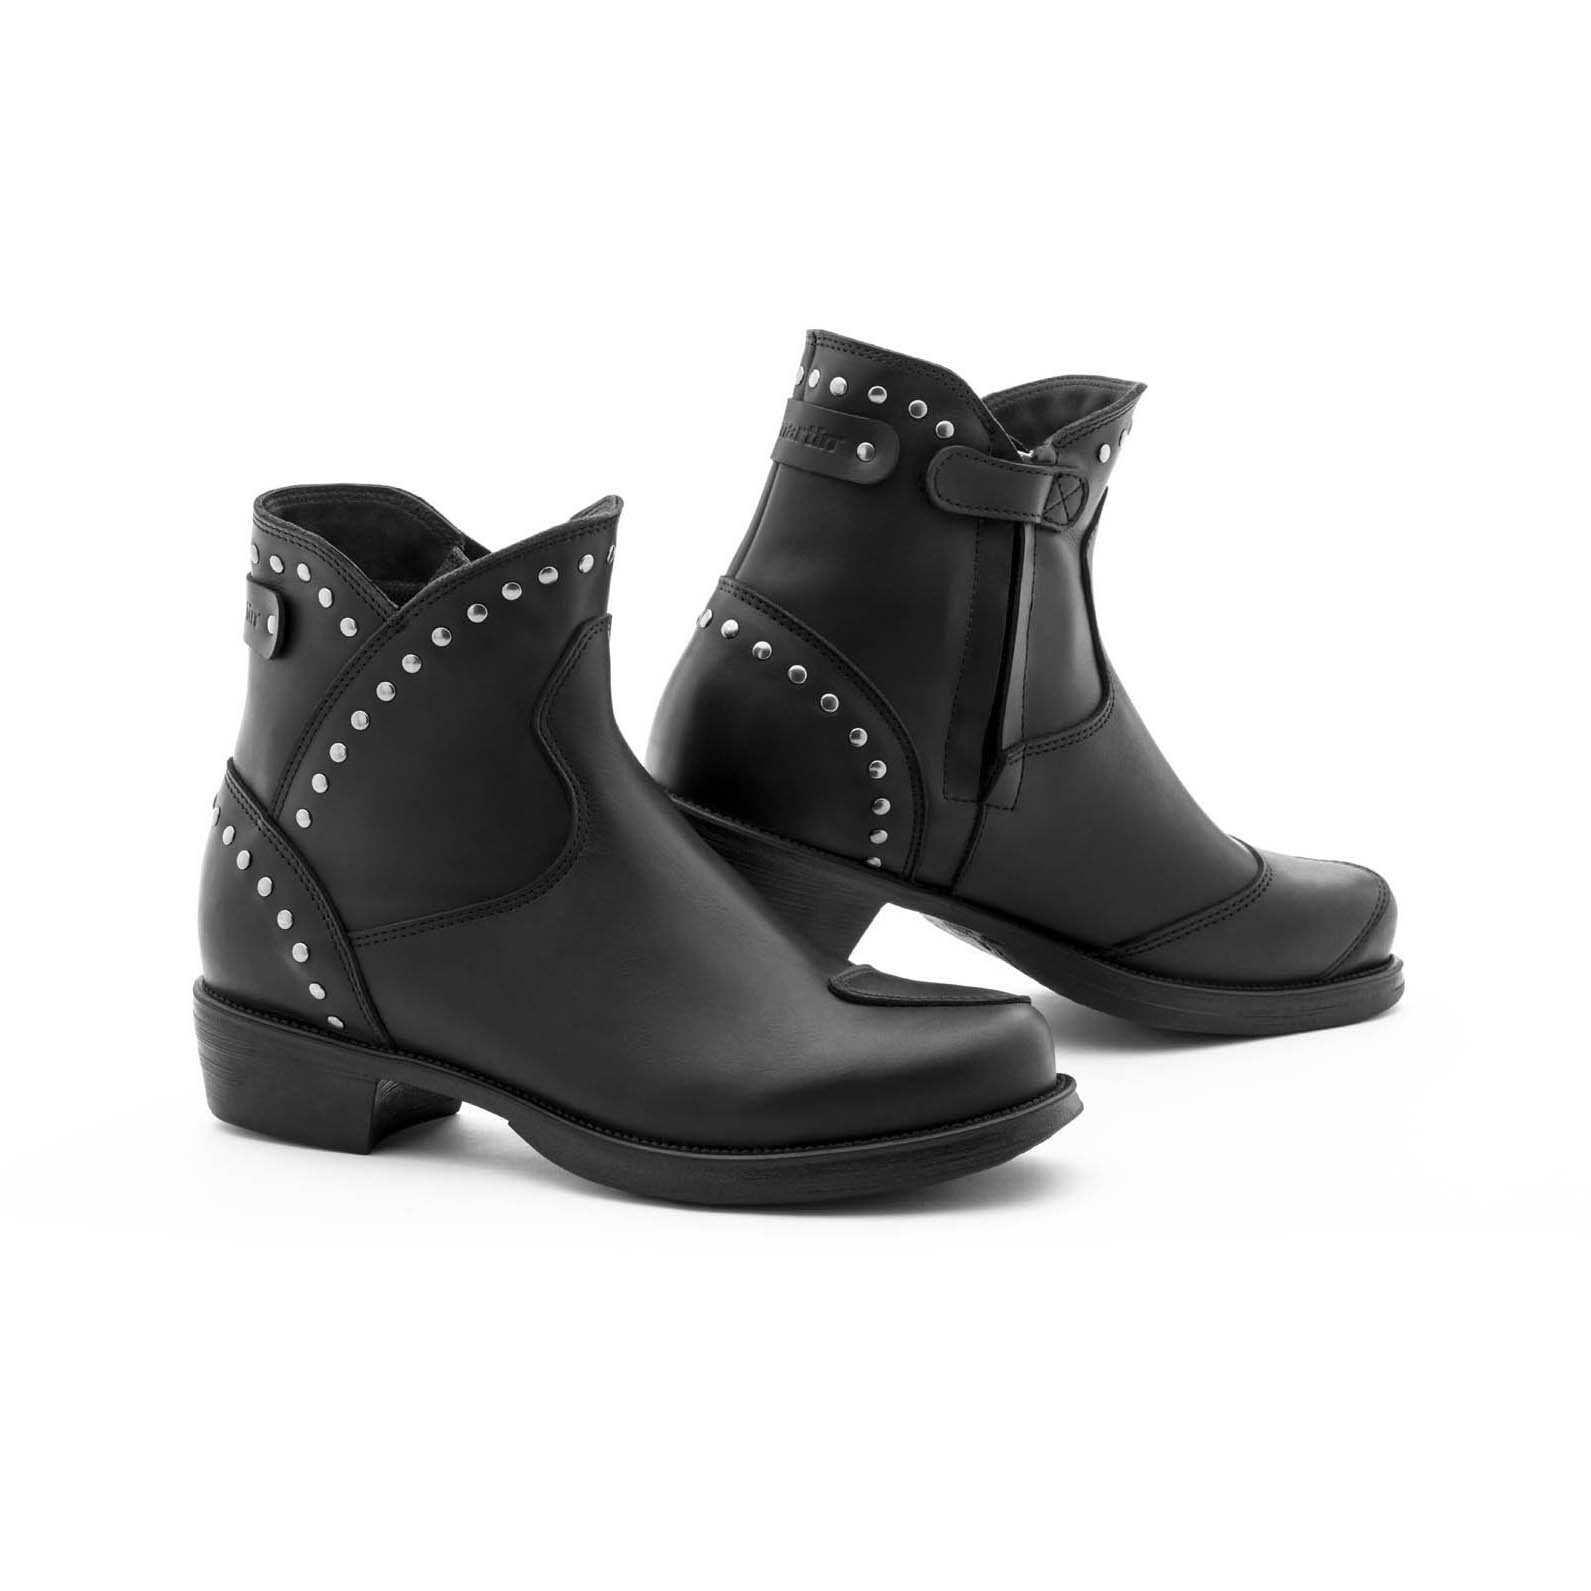 Stylmartin - Stylmartin Pearl Rock WP Urban in Black - Boots - Salt Flats Clothing